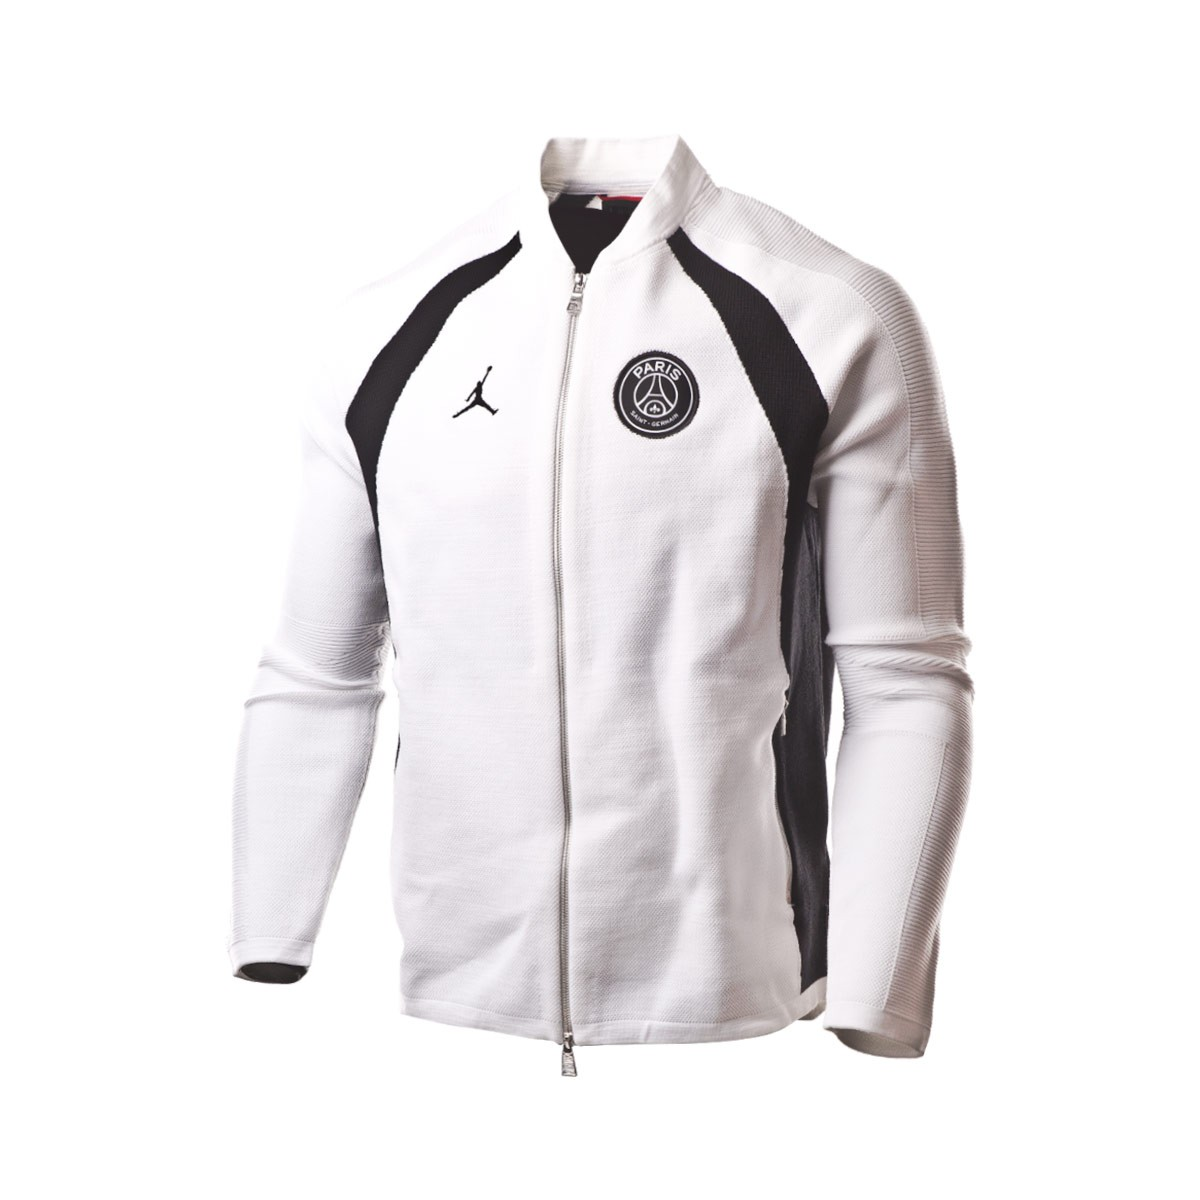 42cc5c540abd Jacket Nike Jordan x PSG Flight Knit FZ White-Black - Football store ...